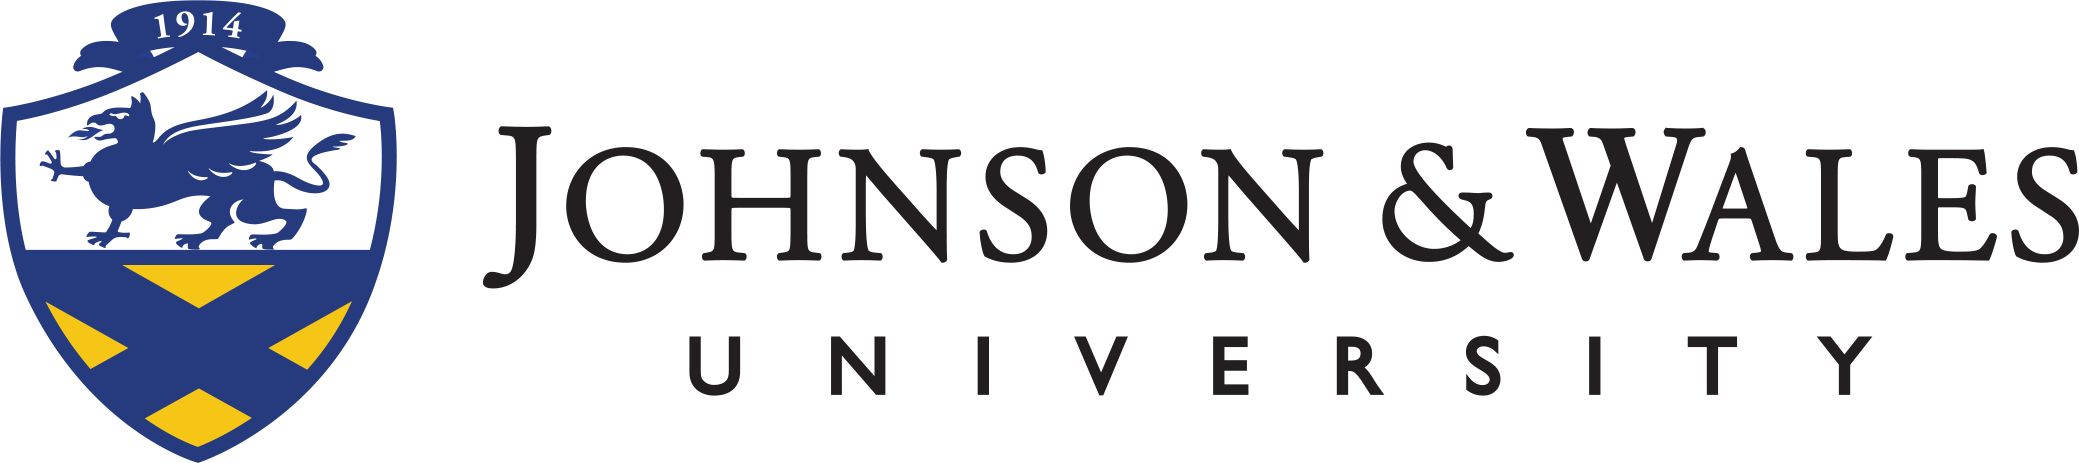 johnson-wales-university-logo.png